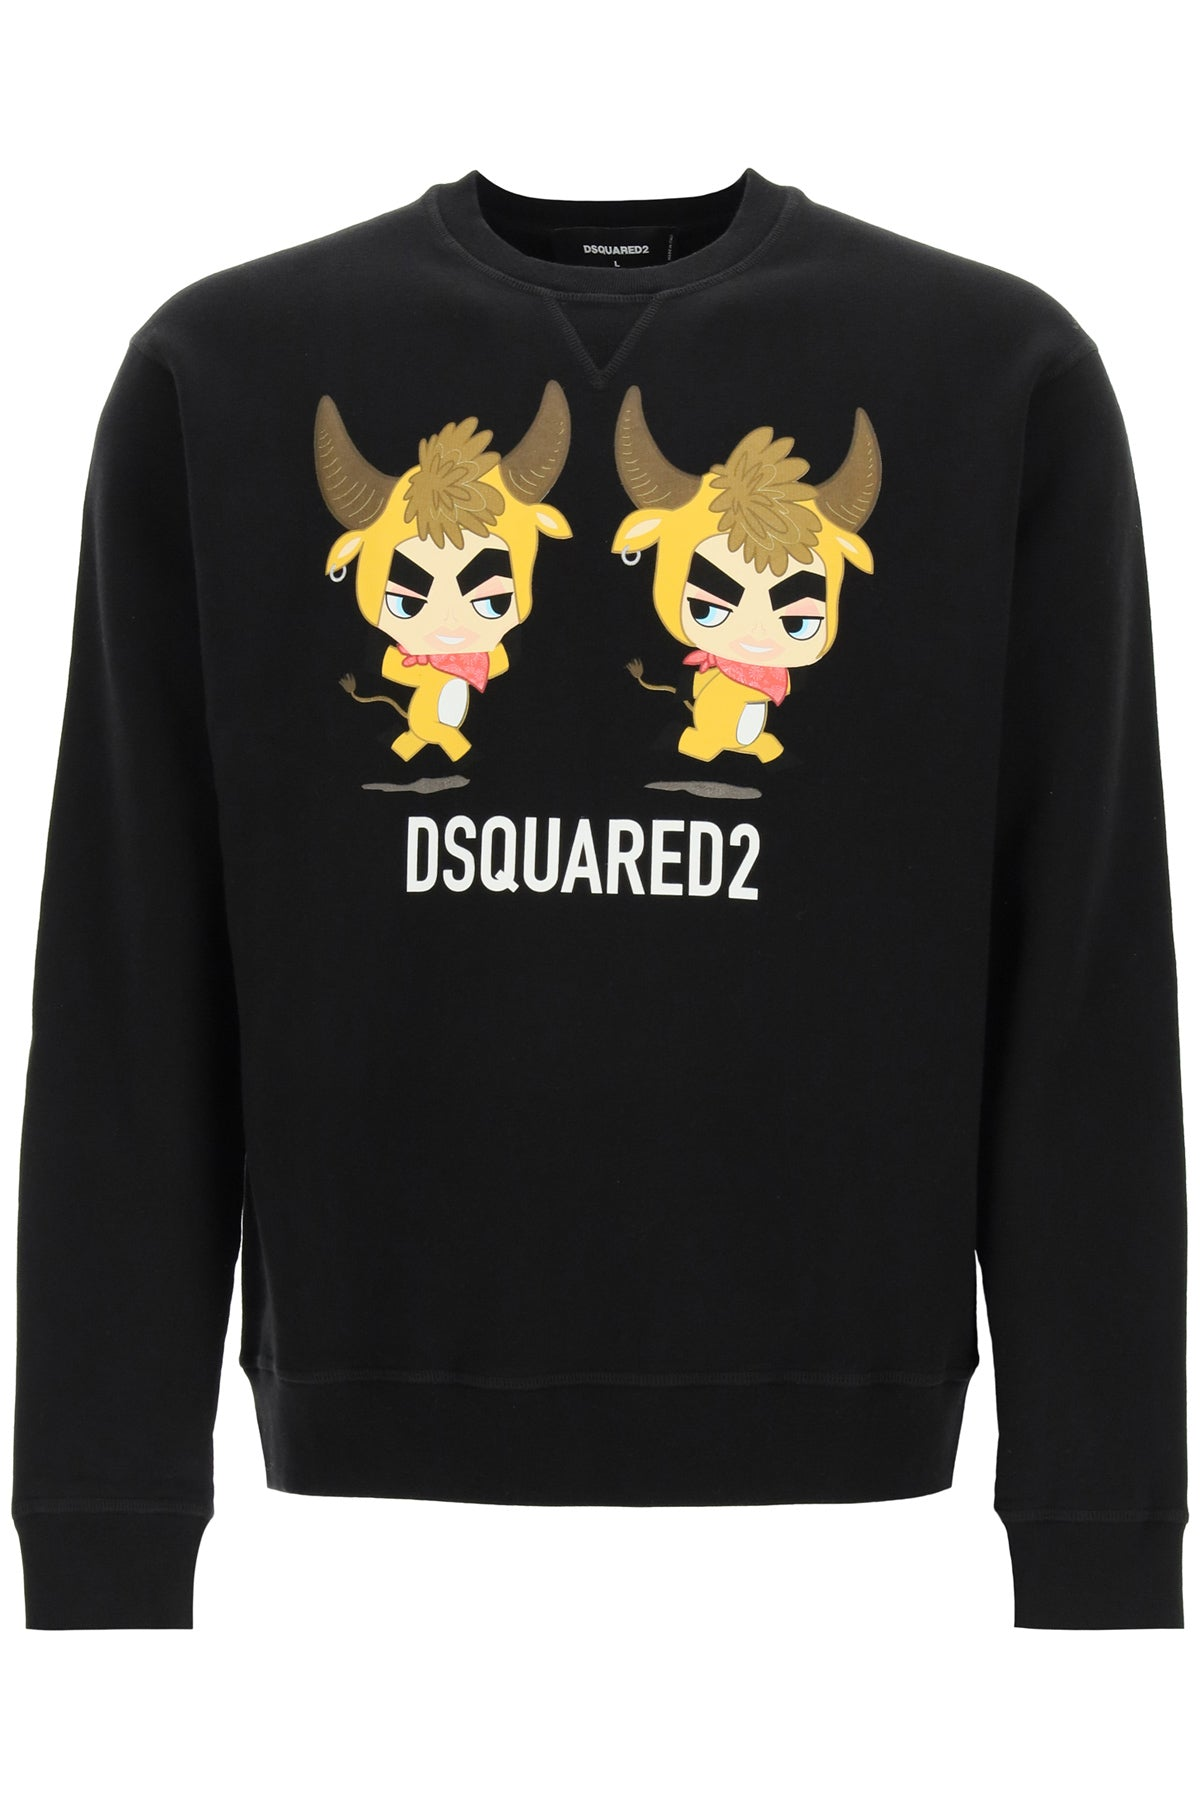 Dsquared2 Clothing DSQUARED2 YEAR OF THE OX SWEATSHIRT